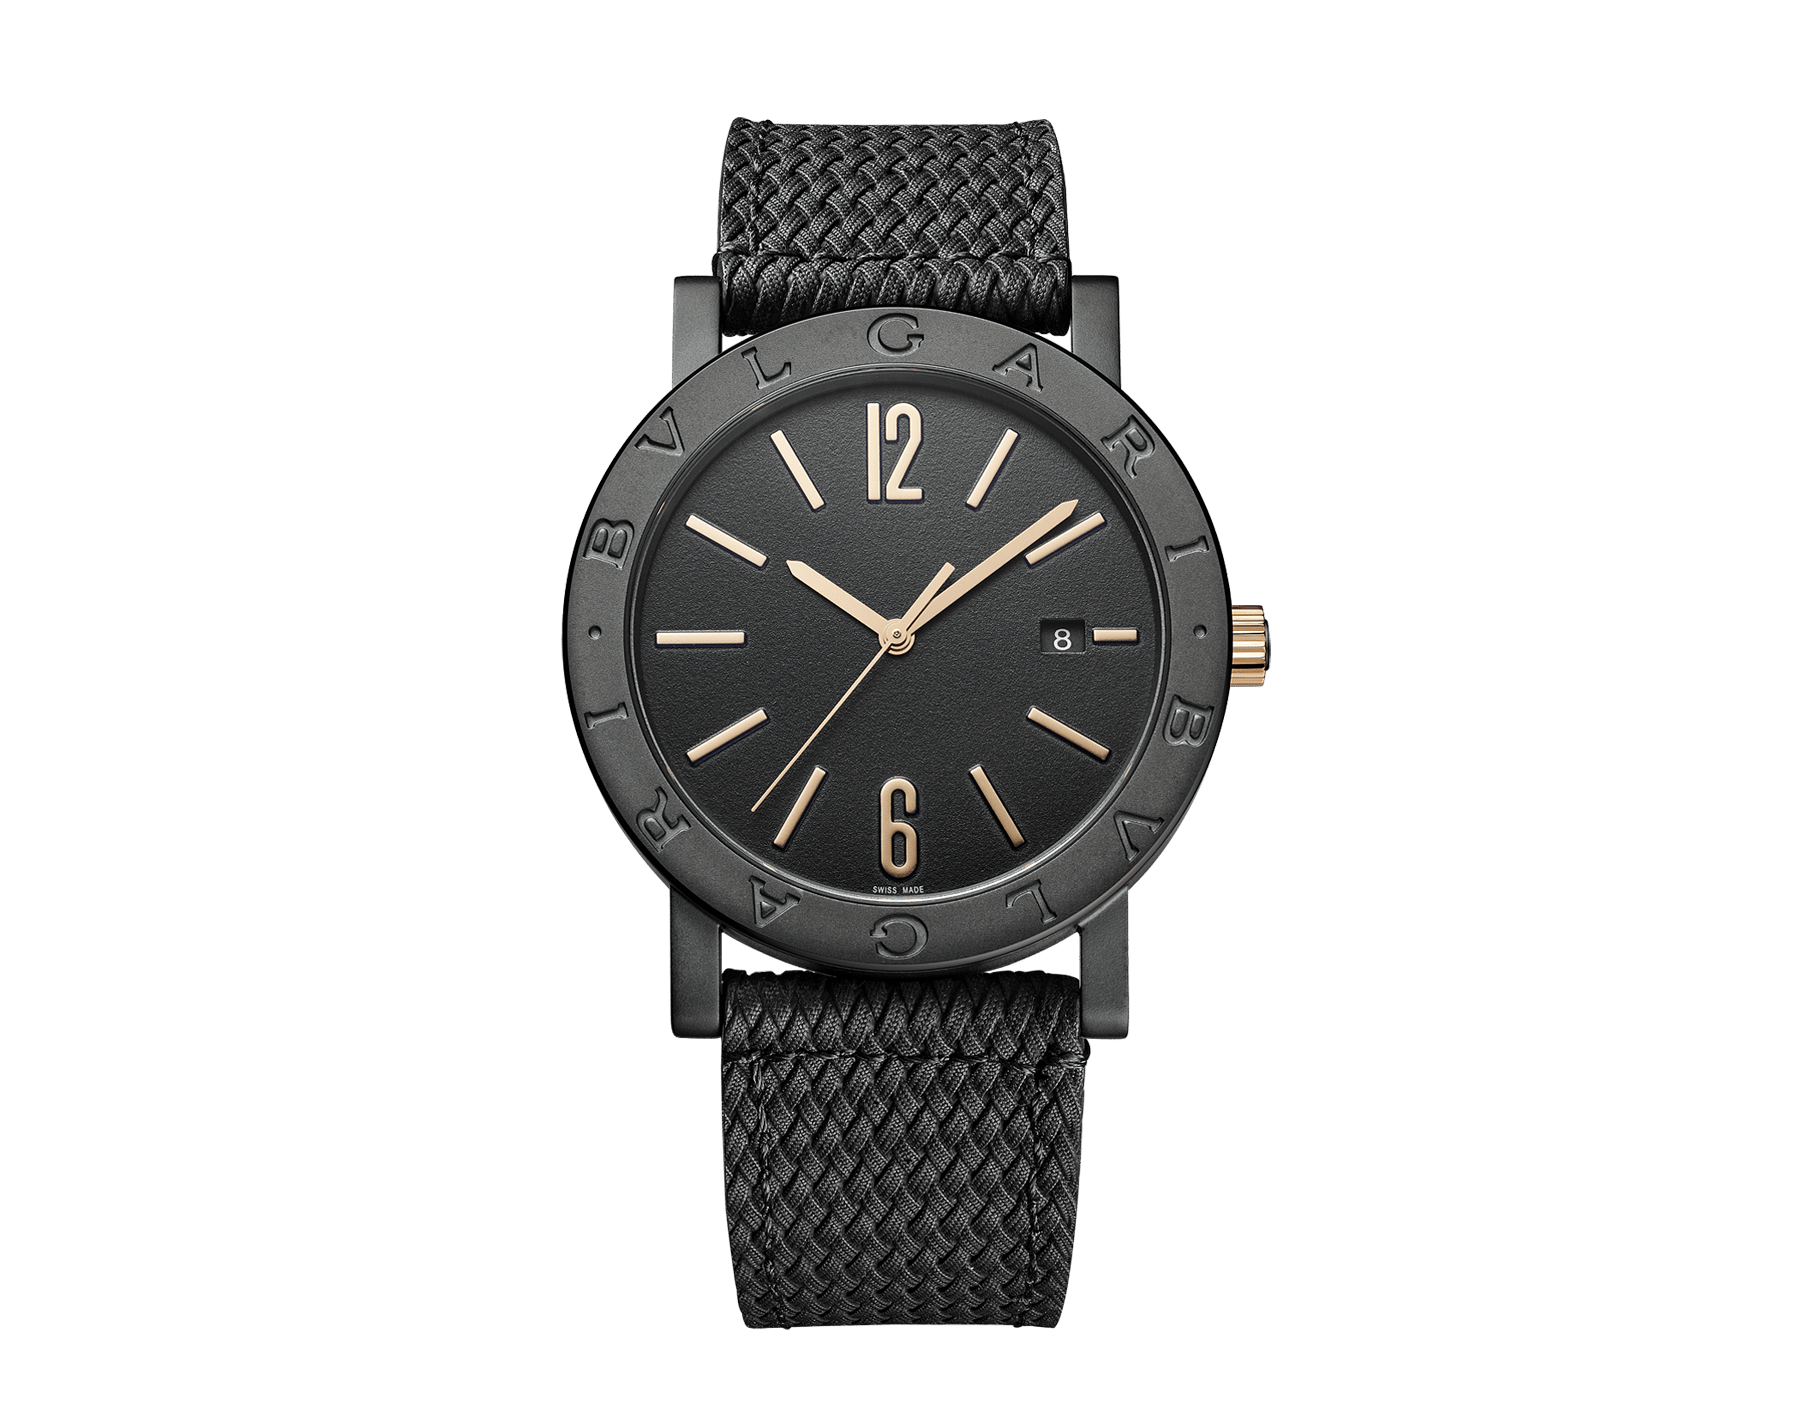 BVLGARI BVLGARI Solotempo watch with mechanical manufacture movement, automatic winding and date, stainless steel case treated with black Diamond Like Carbon and bezel engraved with double logo, black dial, black rubber bracelet and interchangeable brown calf leather bracelet 102929 image 1